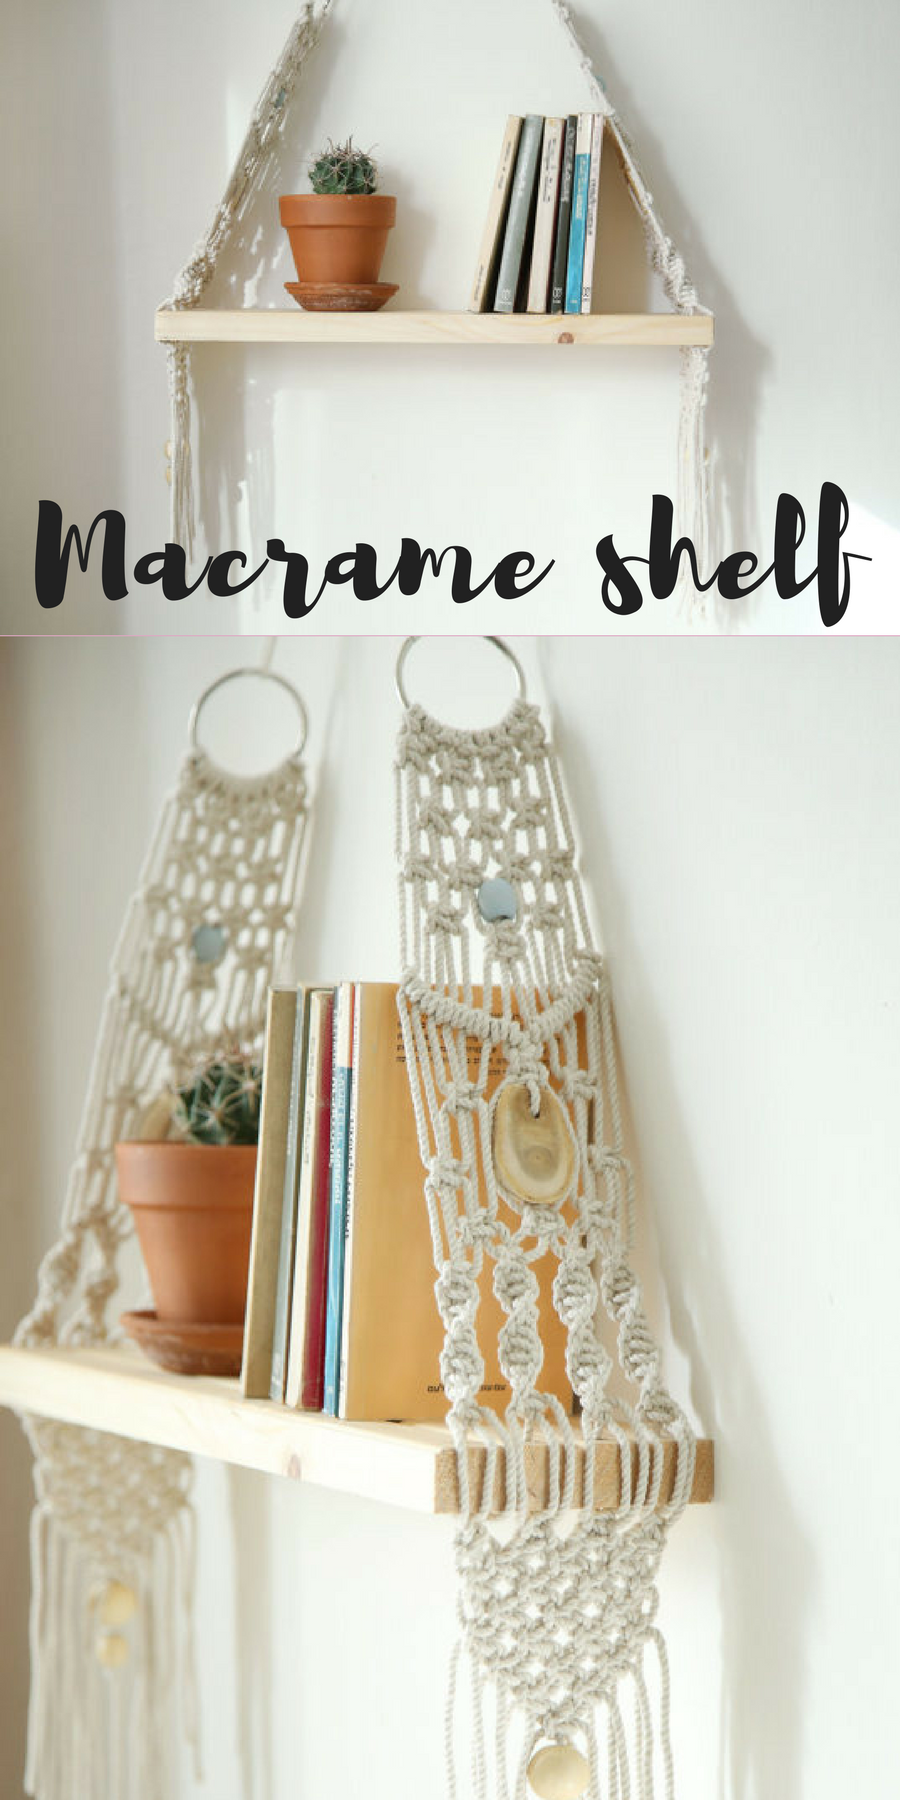 Macrame wall hanging Shelf can hang and decor your walls ...